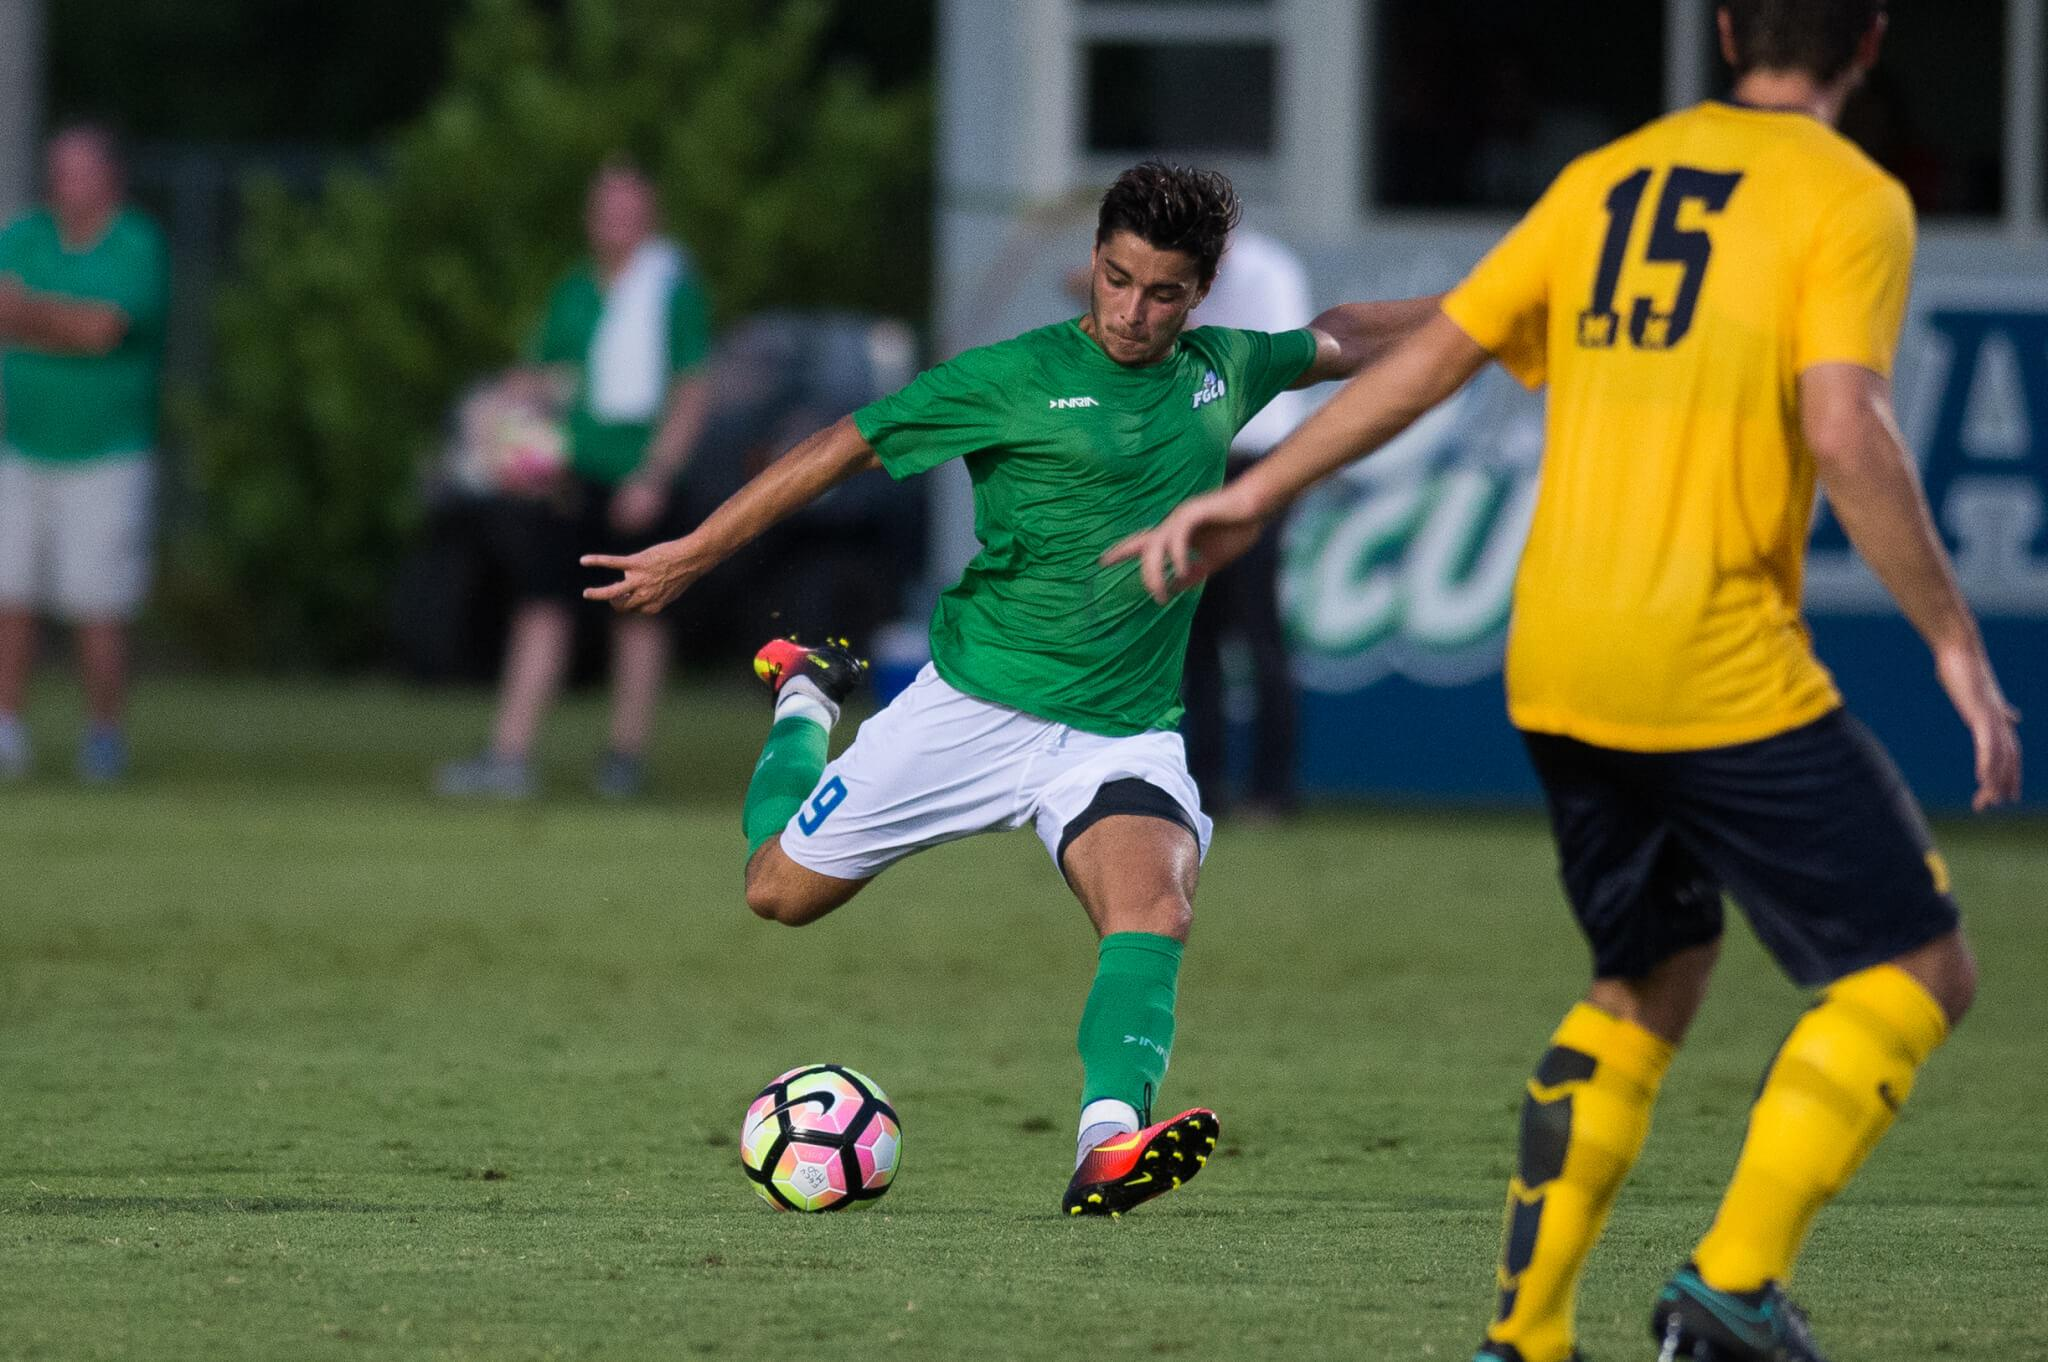 FGCU men's soccer team battles back to earn a 2-2 draw against Michigan in double overtime